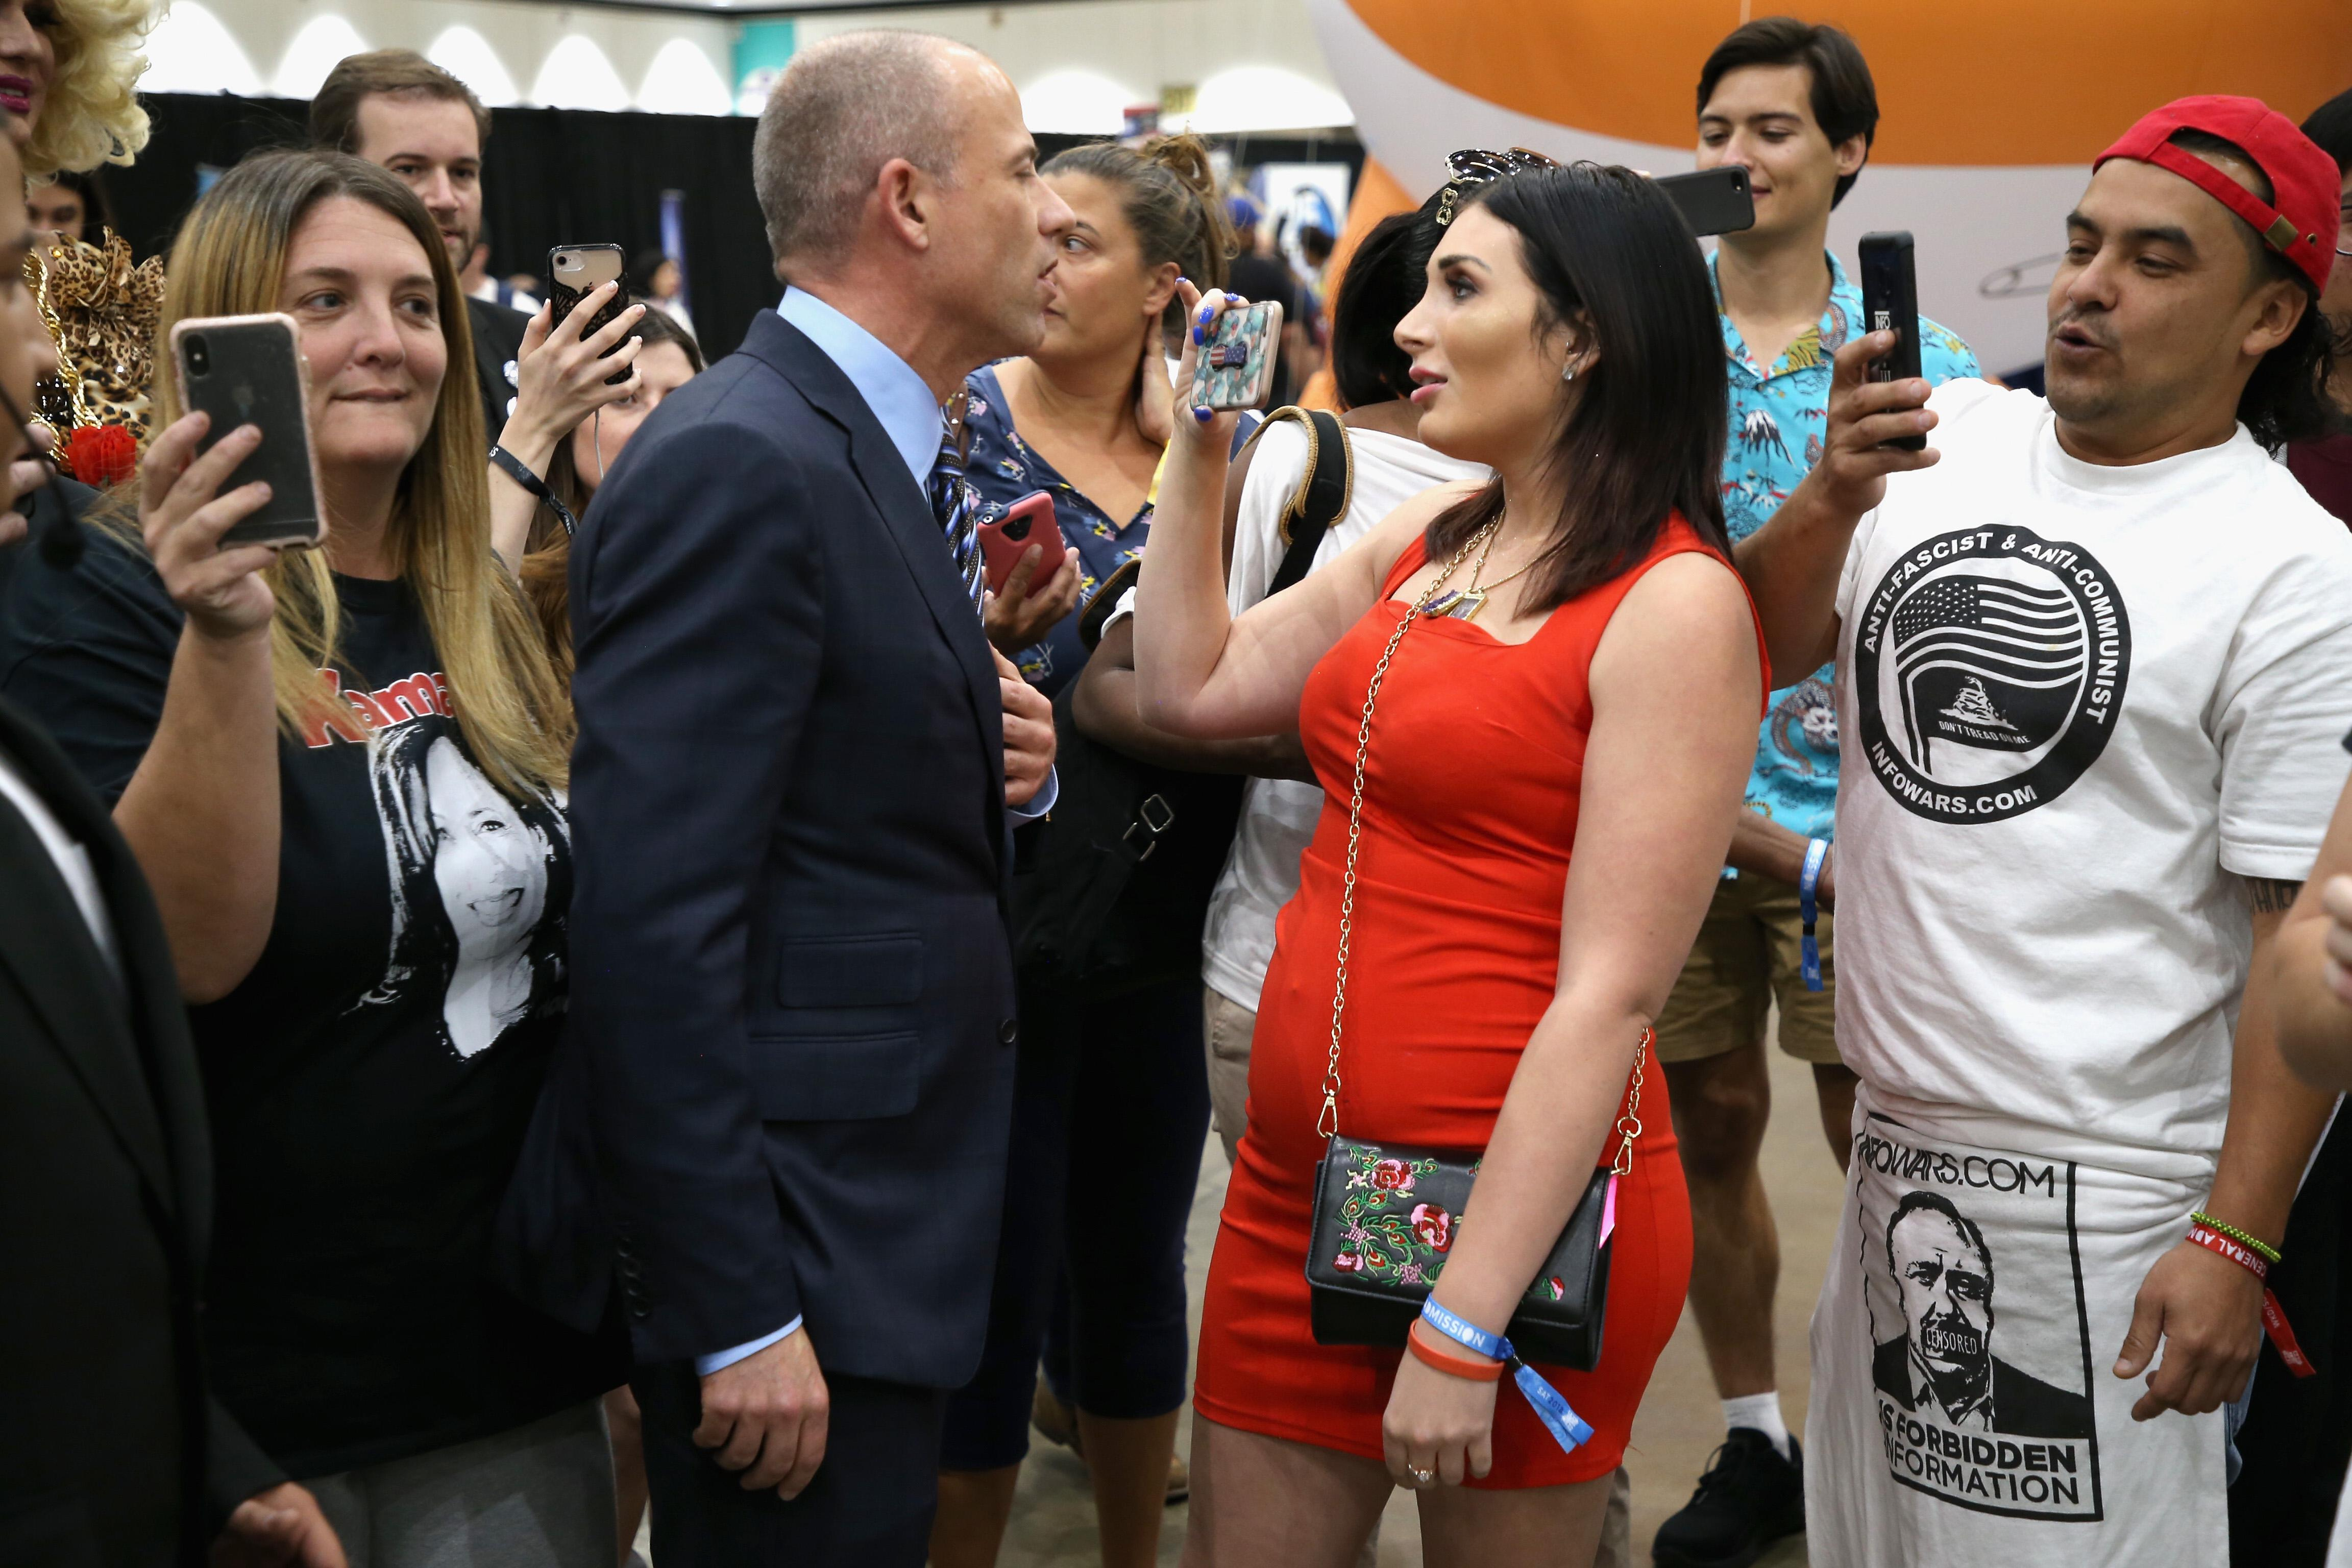 LOS ANGELES, CA - OCTOBER 20:  Michael Avenatti (L) and Laura Loomer attend Politicon 2018 at Los Angeles Convention Center on October 20, 2018 in Los Angeles, California.  (Photo by Phillip Faraone/Getty Images for Politicon)